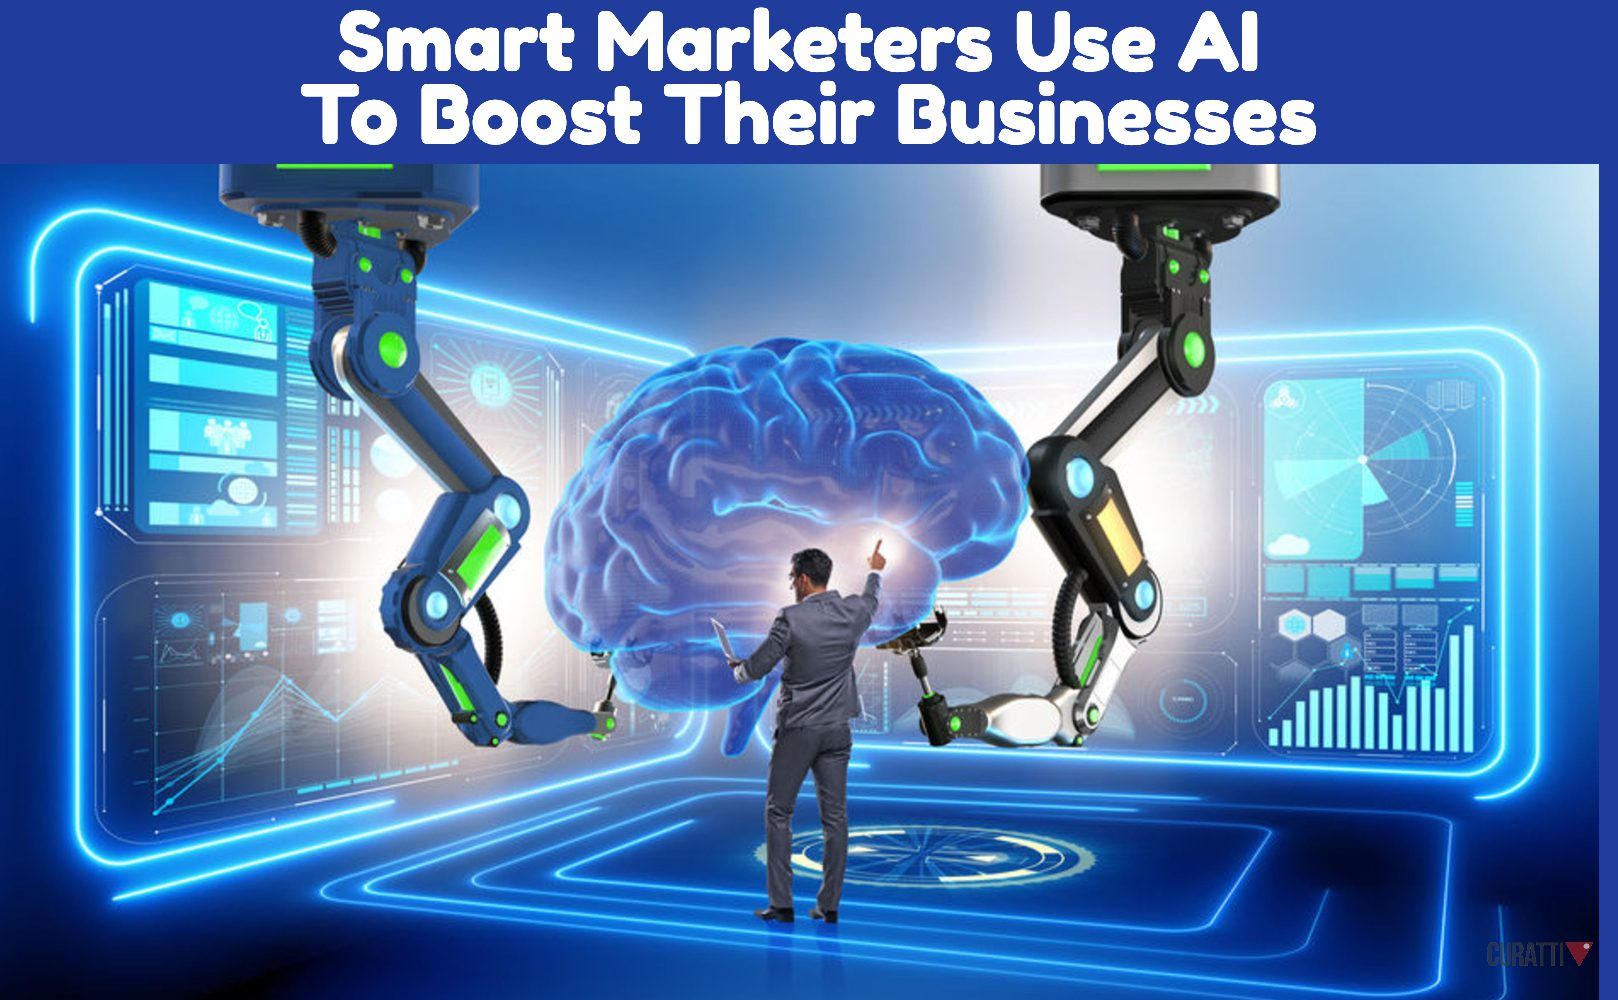 Use AI in Marketing to help your business